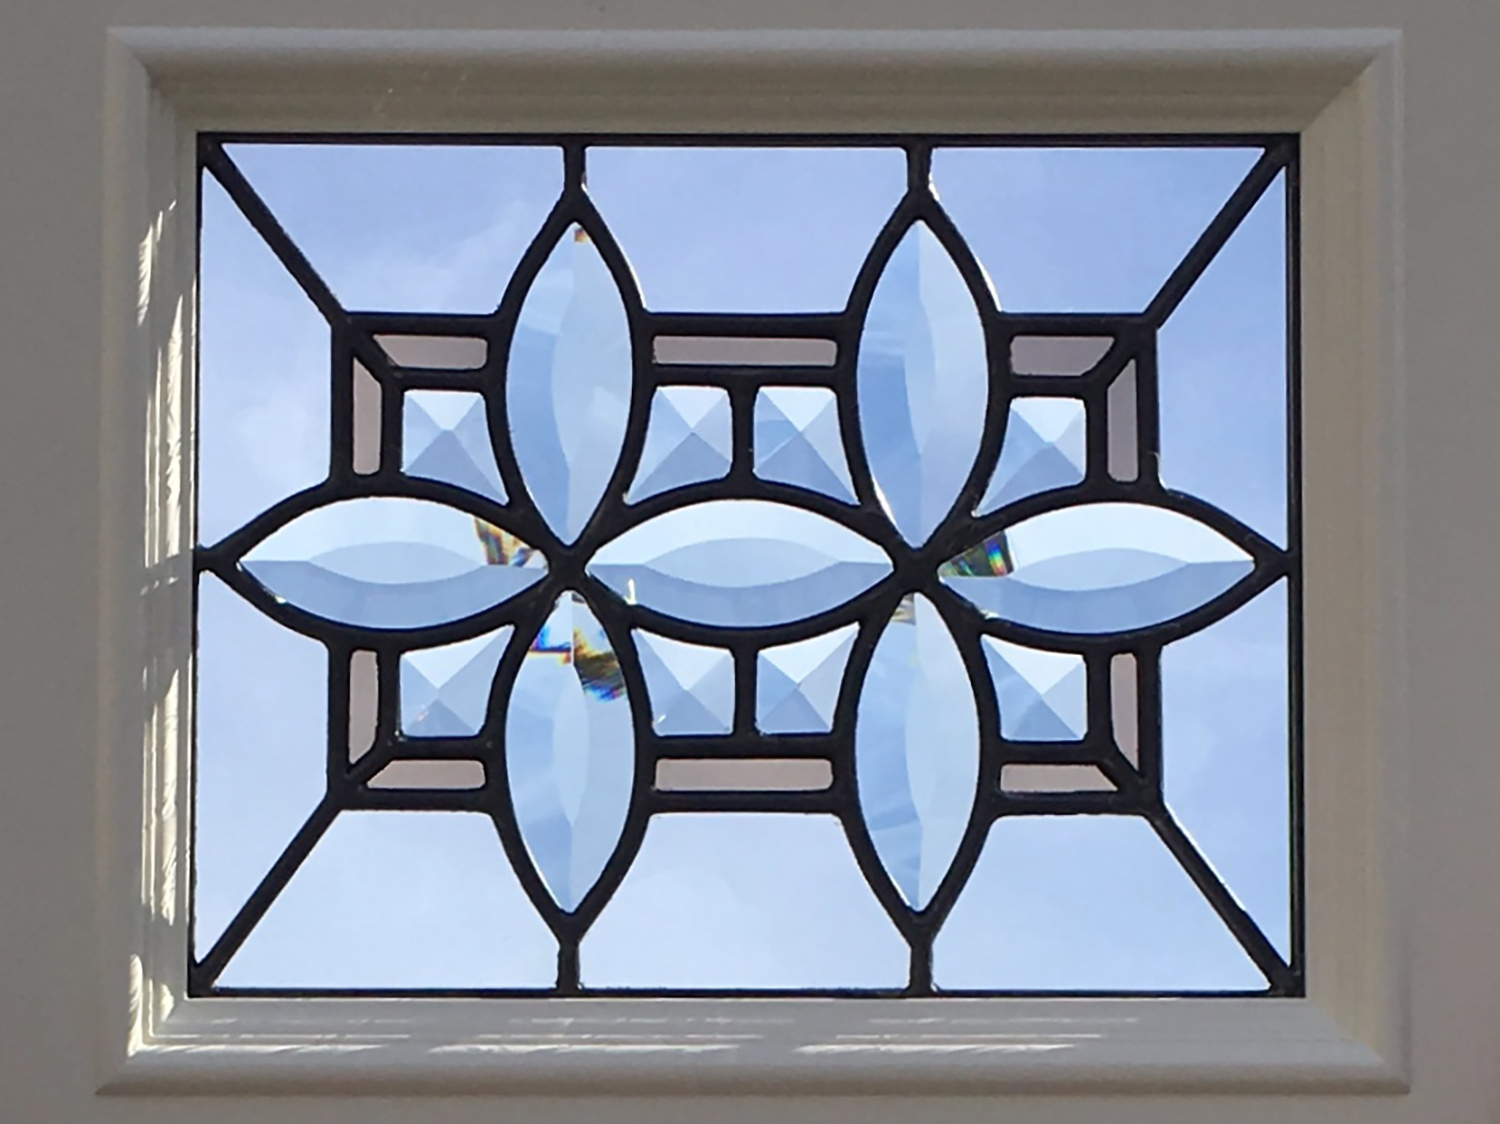 bevel cluster flower cabinet door beveled leaded glass stained glass window palo alto atherton california san francisco.jpg